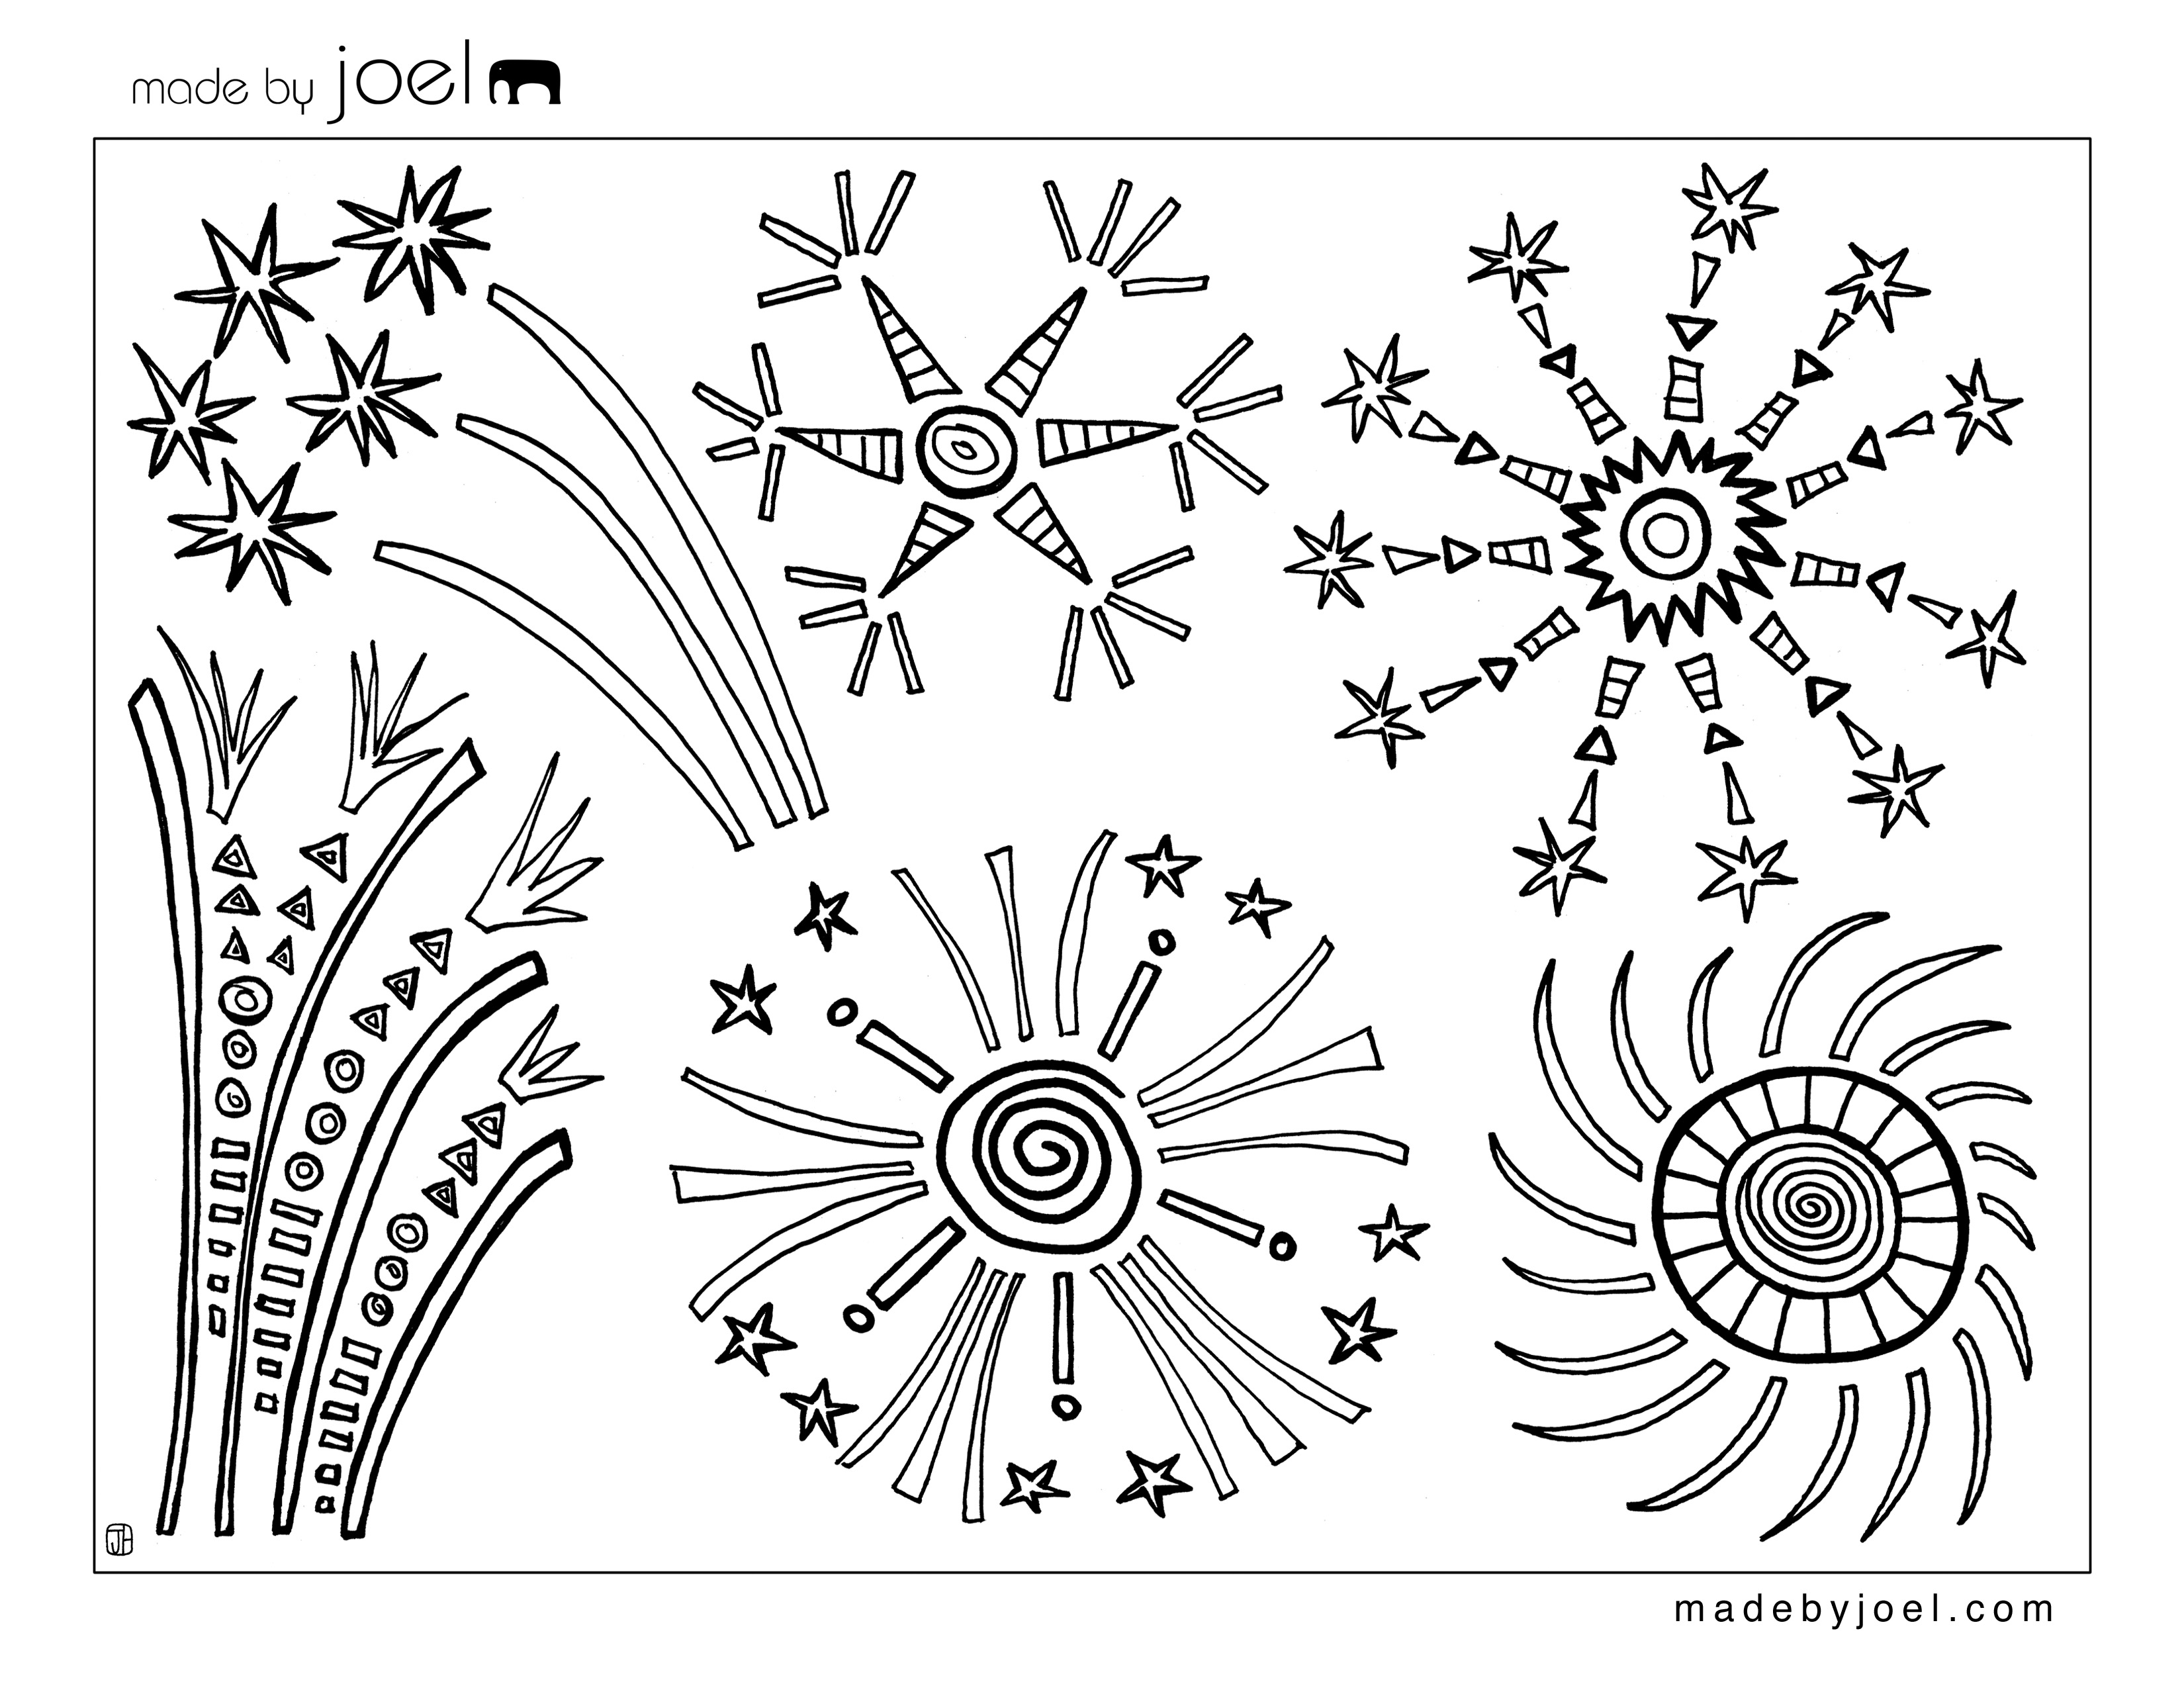 photograph relating to Free Printable 4th of July Coloring Pages called Totally free Printable 4th Of July Coloring Internet pages at